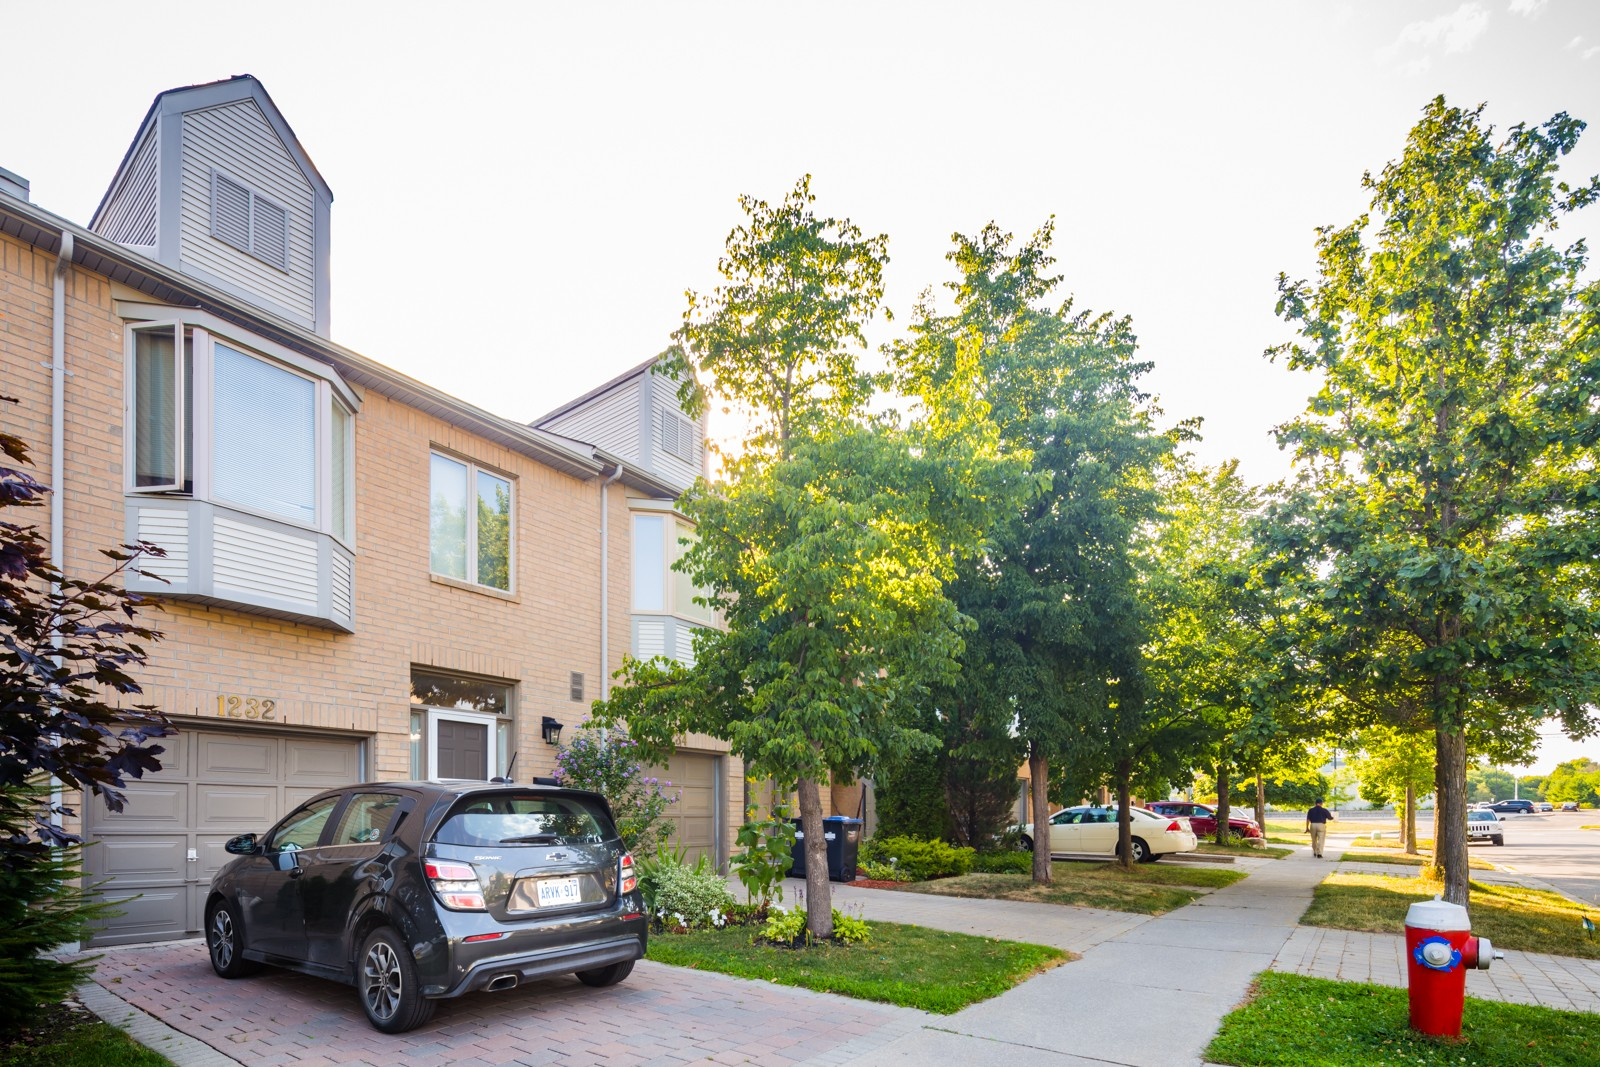 1194 West Shore Drive Townhouses at 1218 W Shore Dr, Mississauga 1